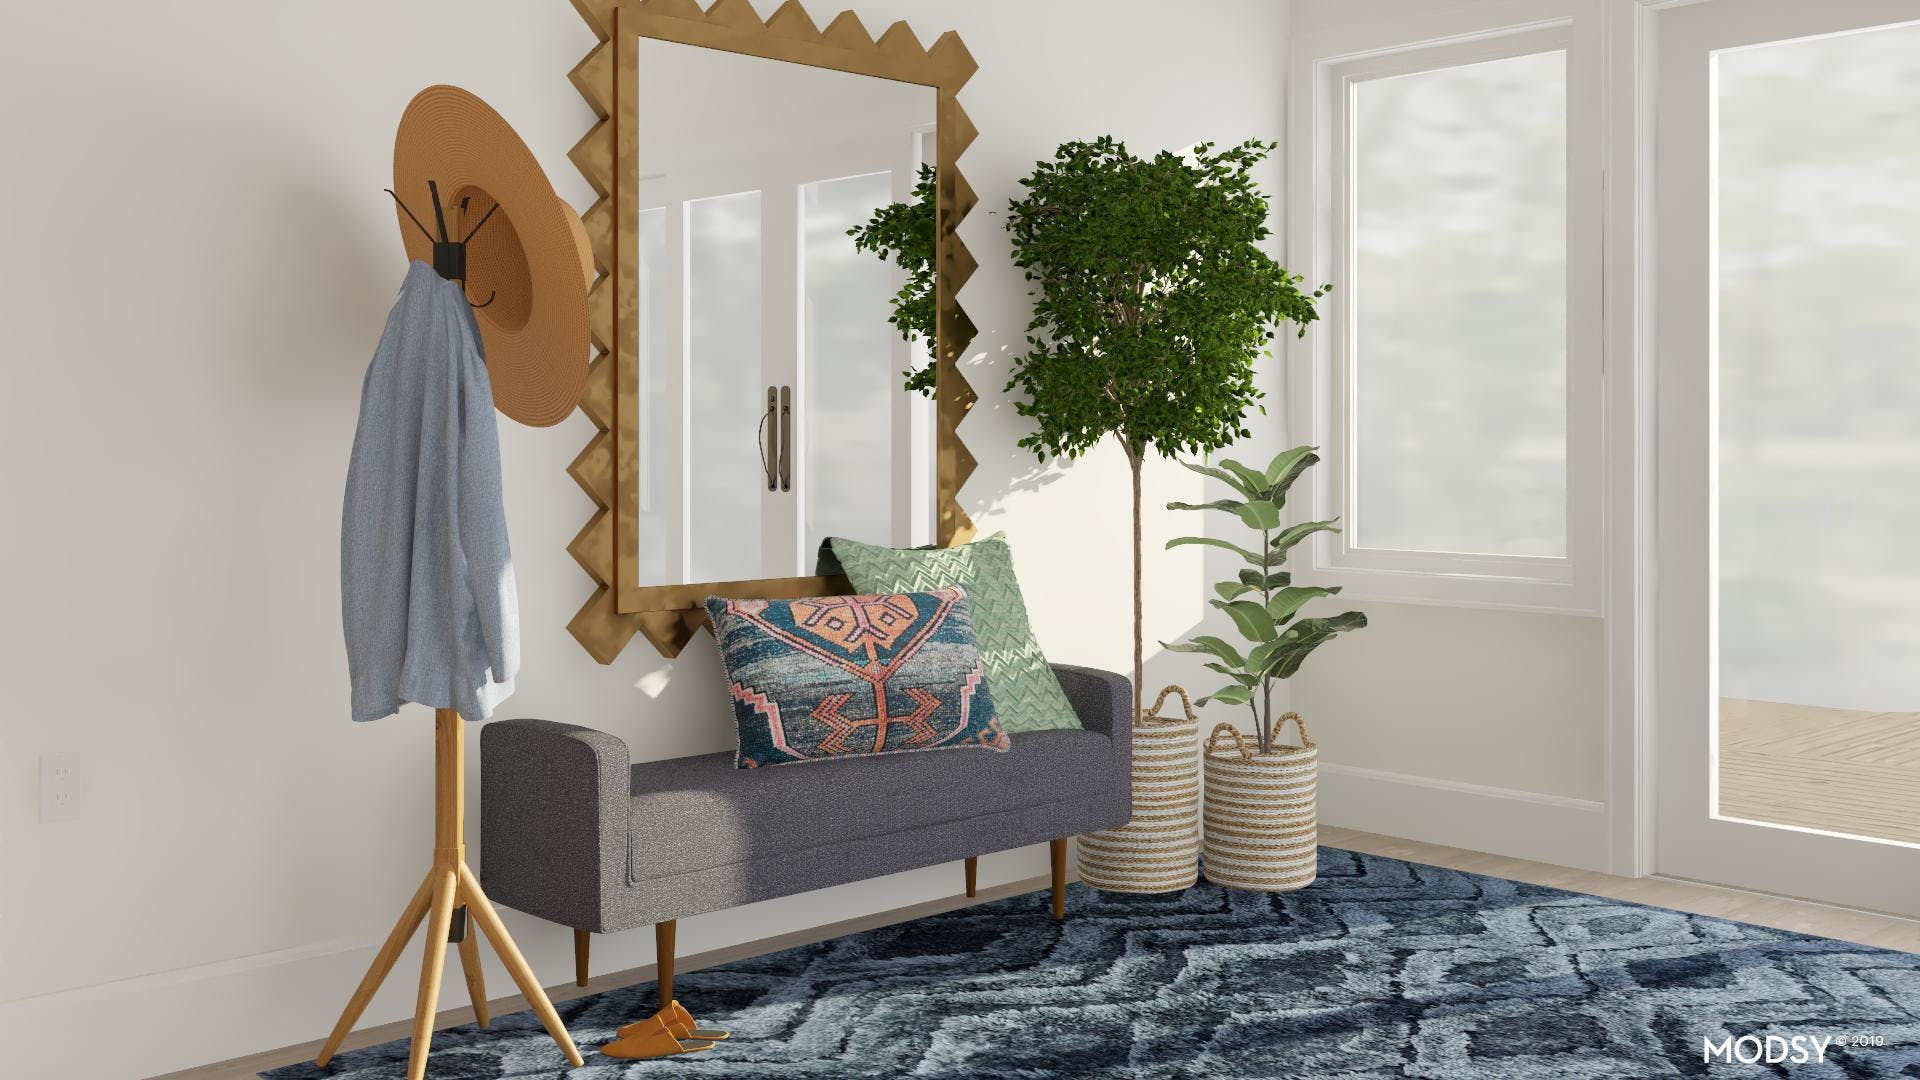 A Bold Mirror For A Mid-Century Entry